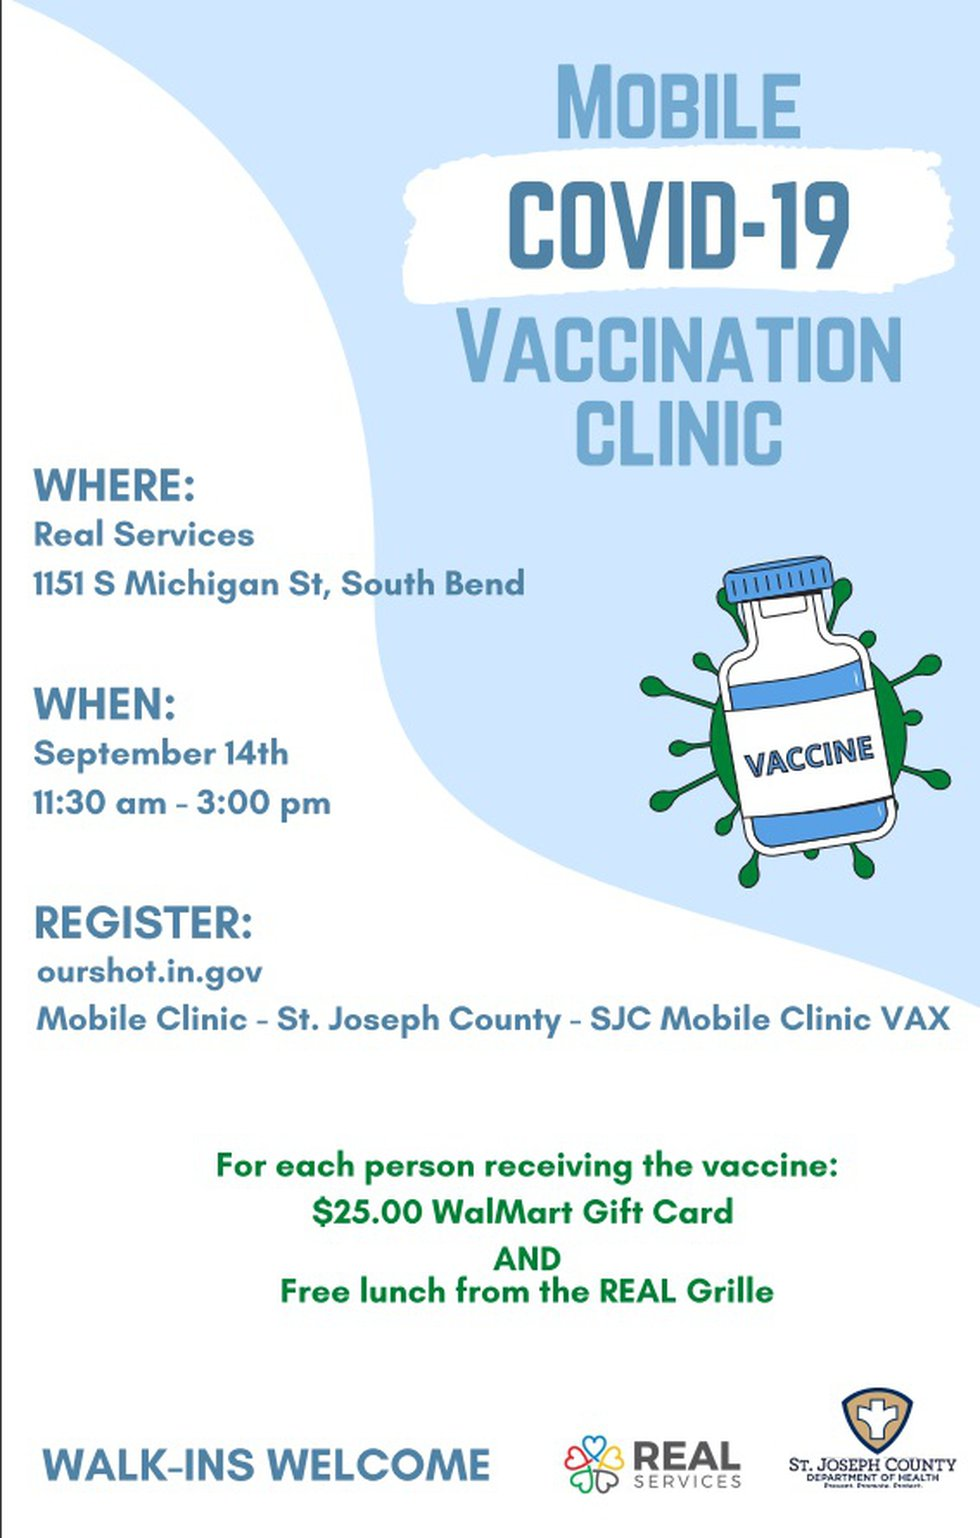 For each person receiving the vaccine, you will get a $25 Walmart gift card and a free lunch...